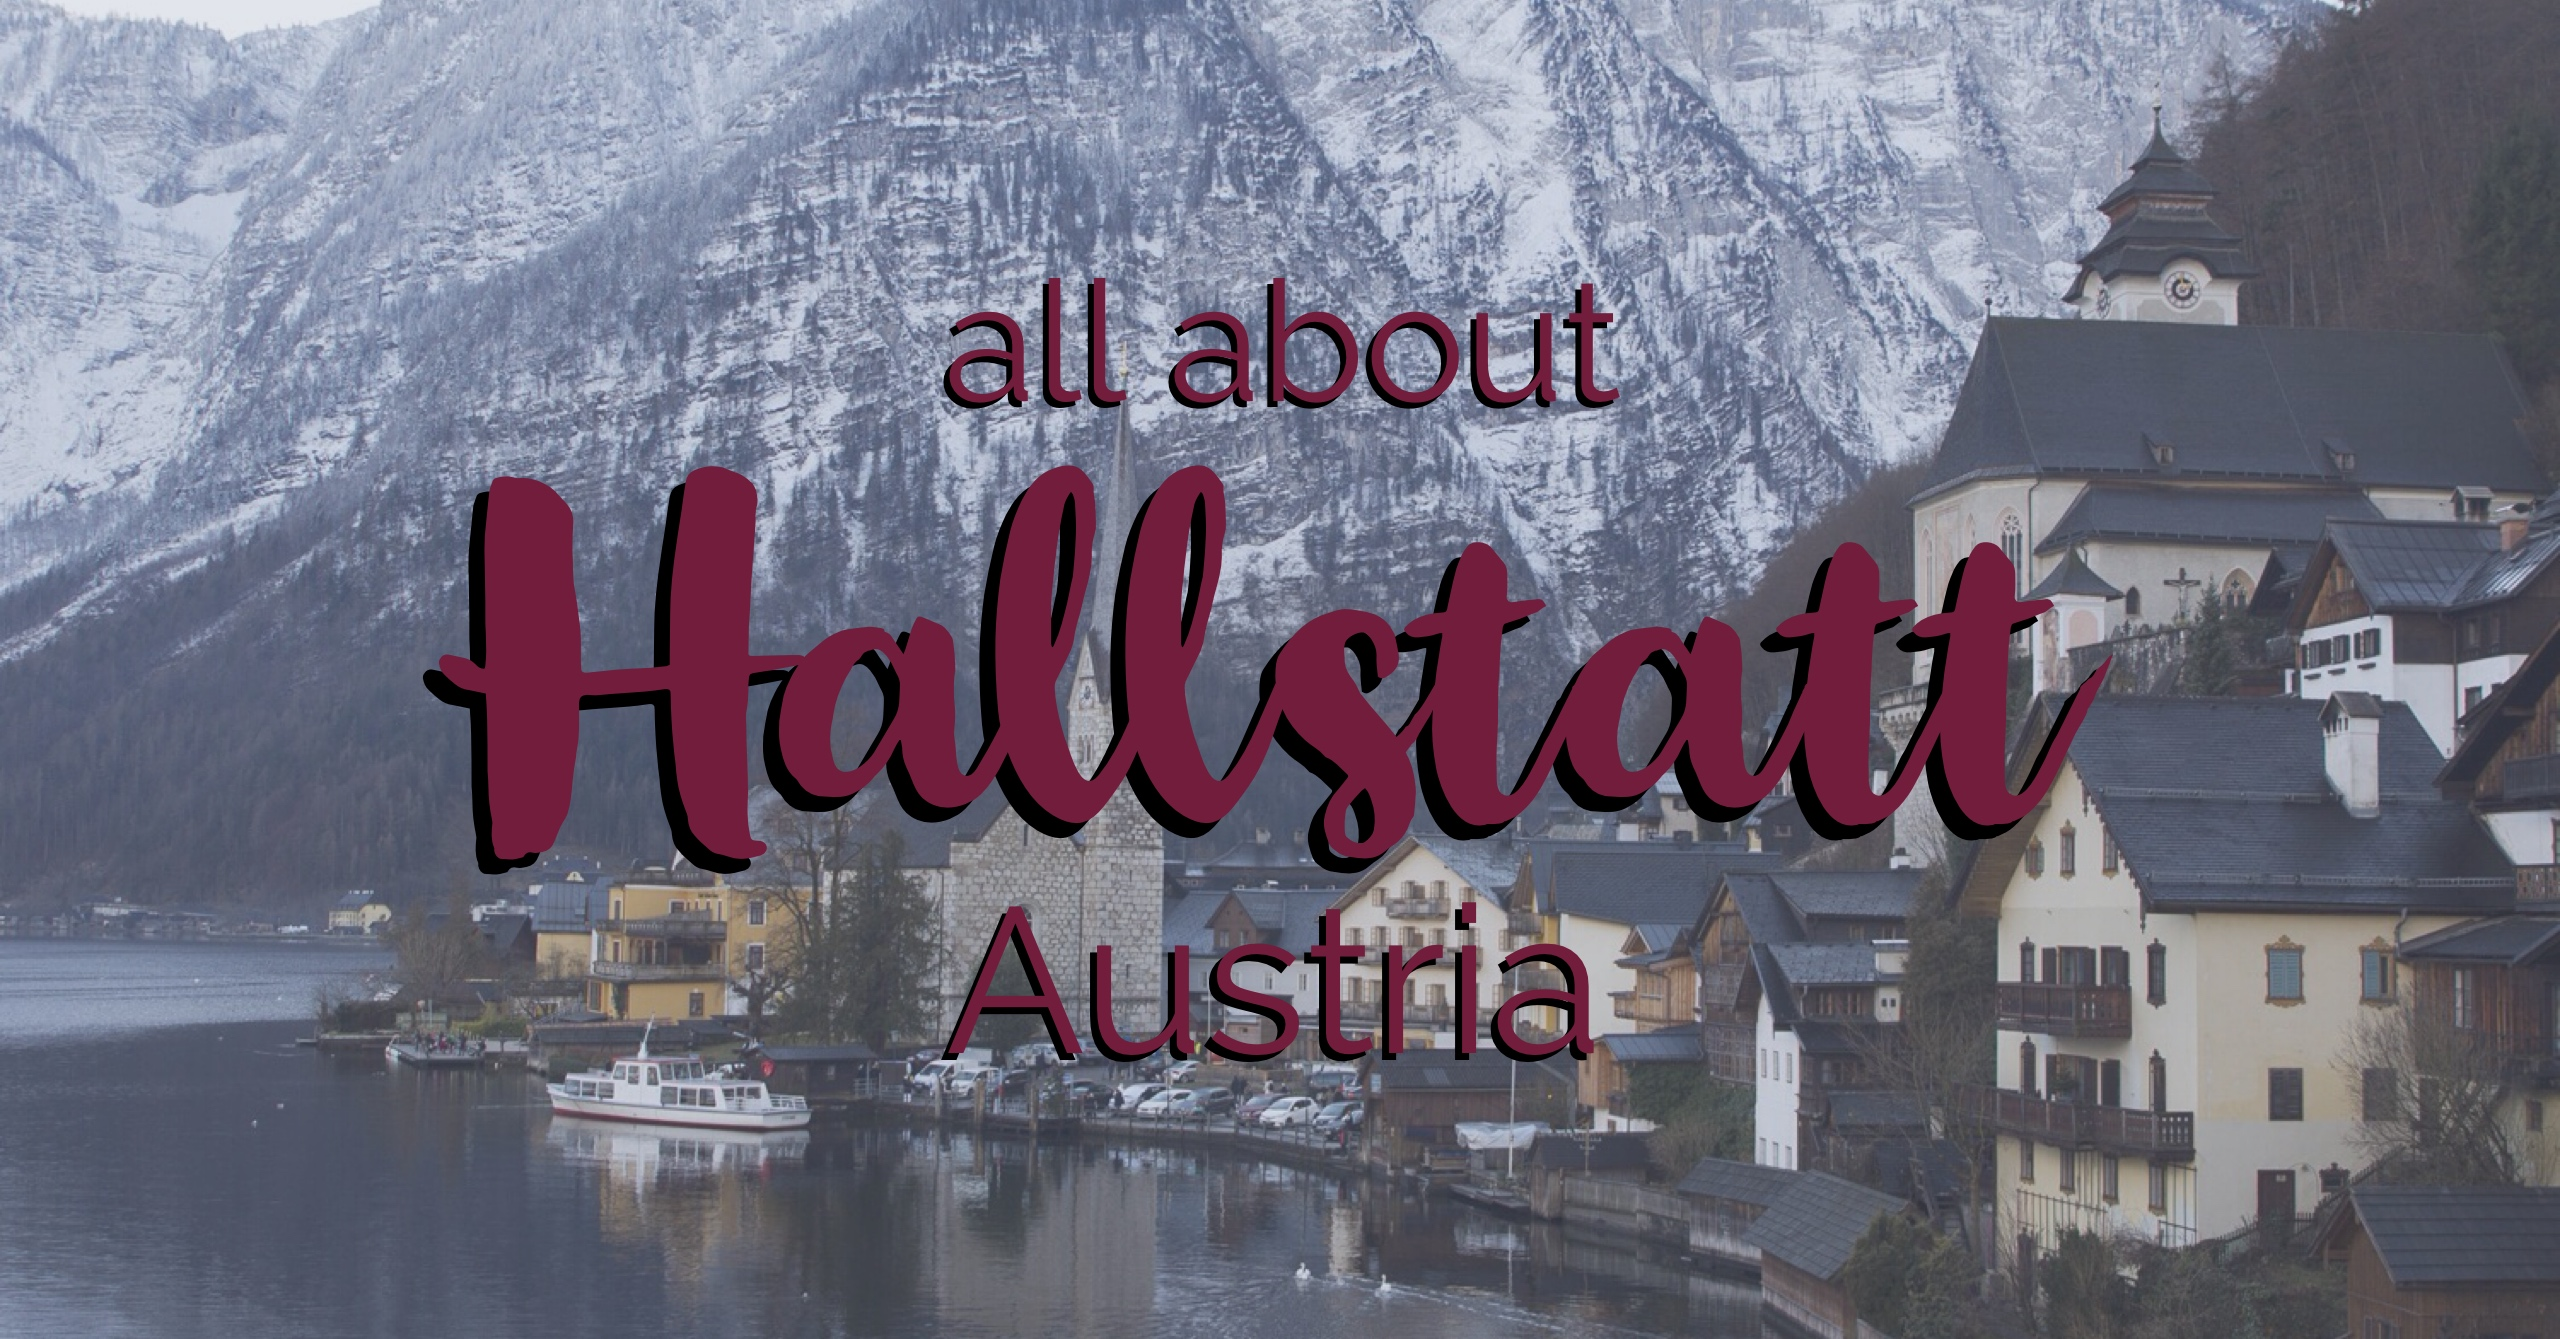 All about Hallstatt Austria | My Wandering Voyage travel blog